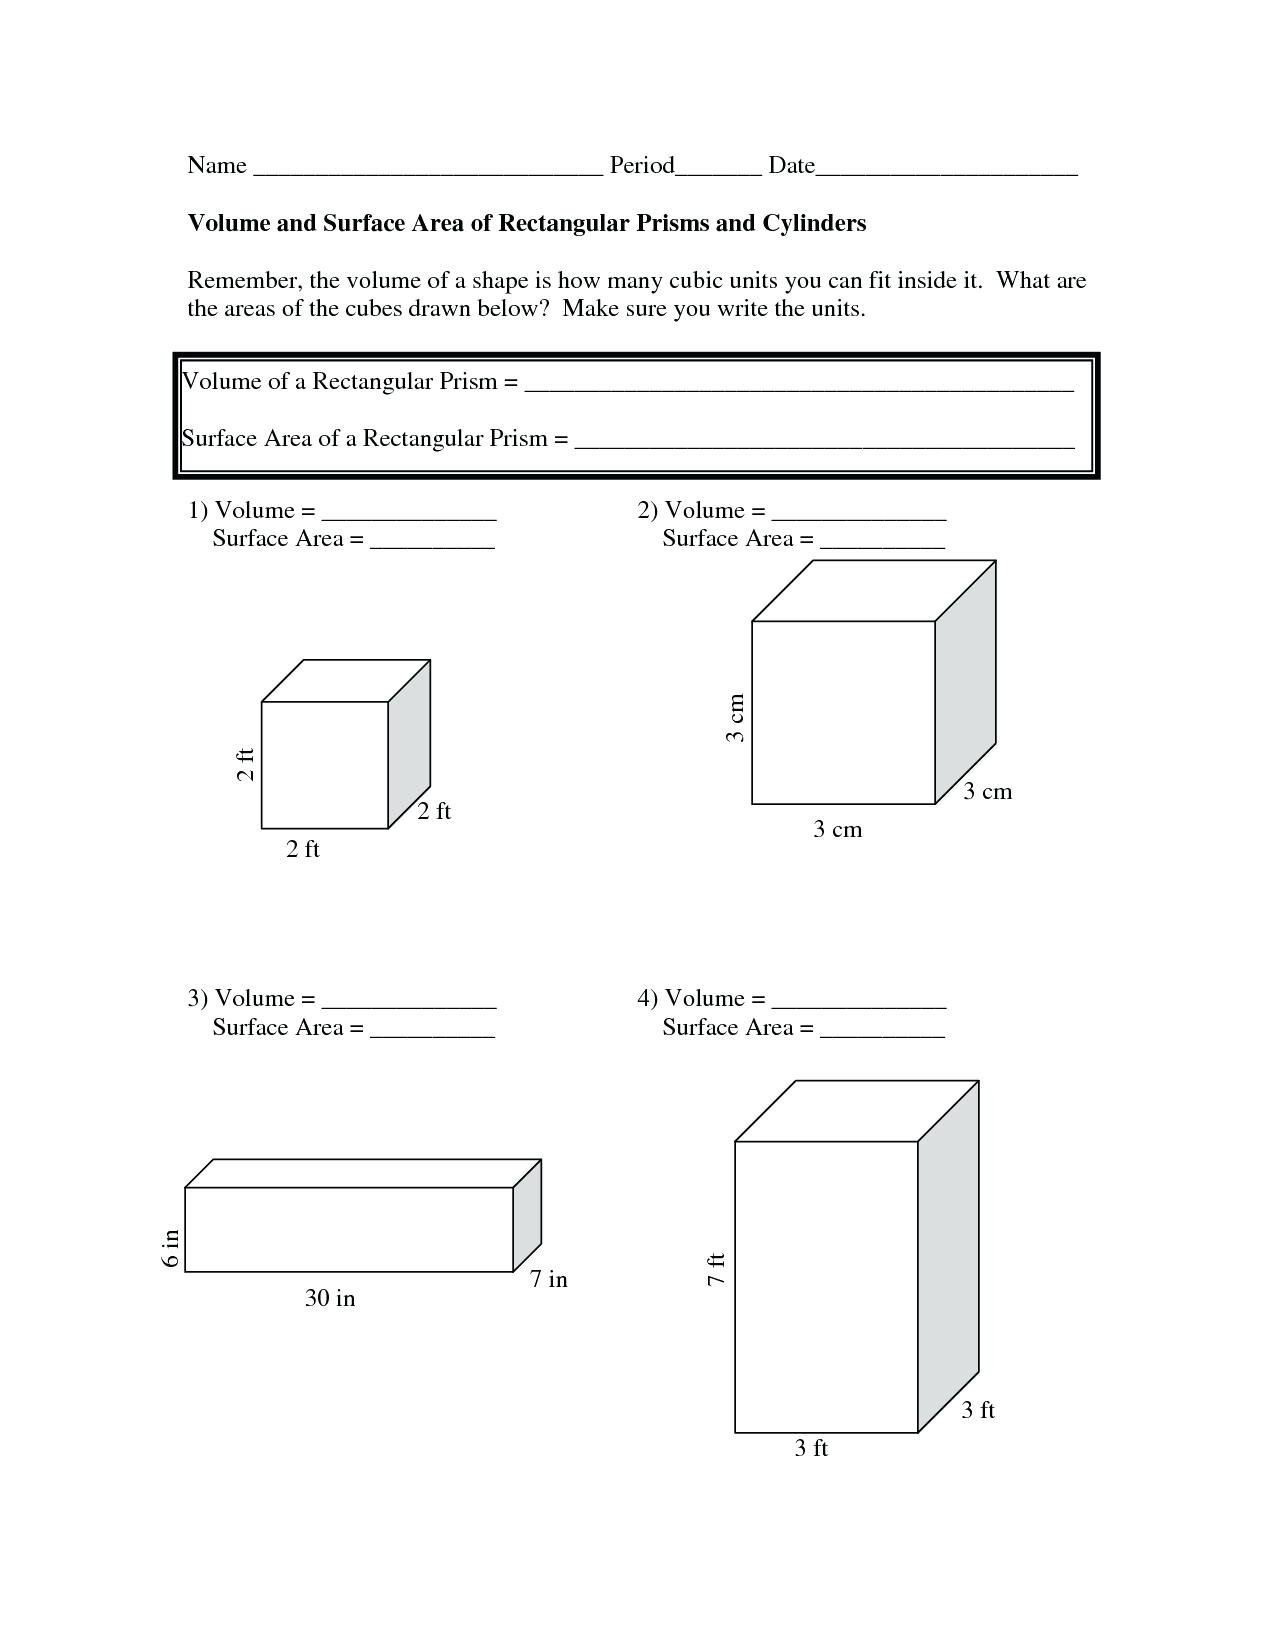 Surface Area Net Worksheet Matching Rectangular Prisms To Their Nets For Surface Area Worksheet Pdf